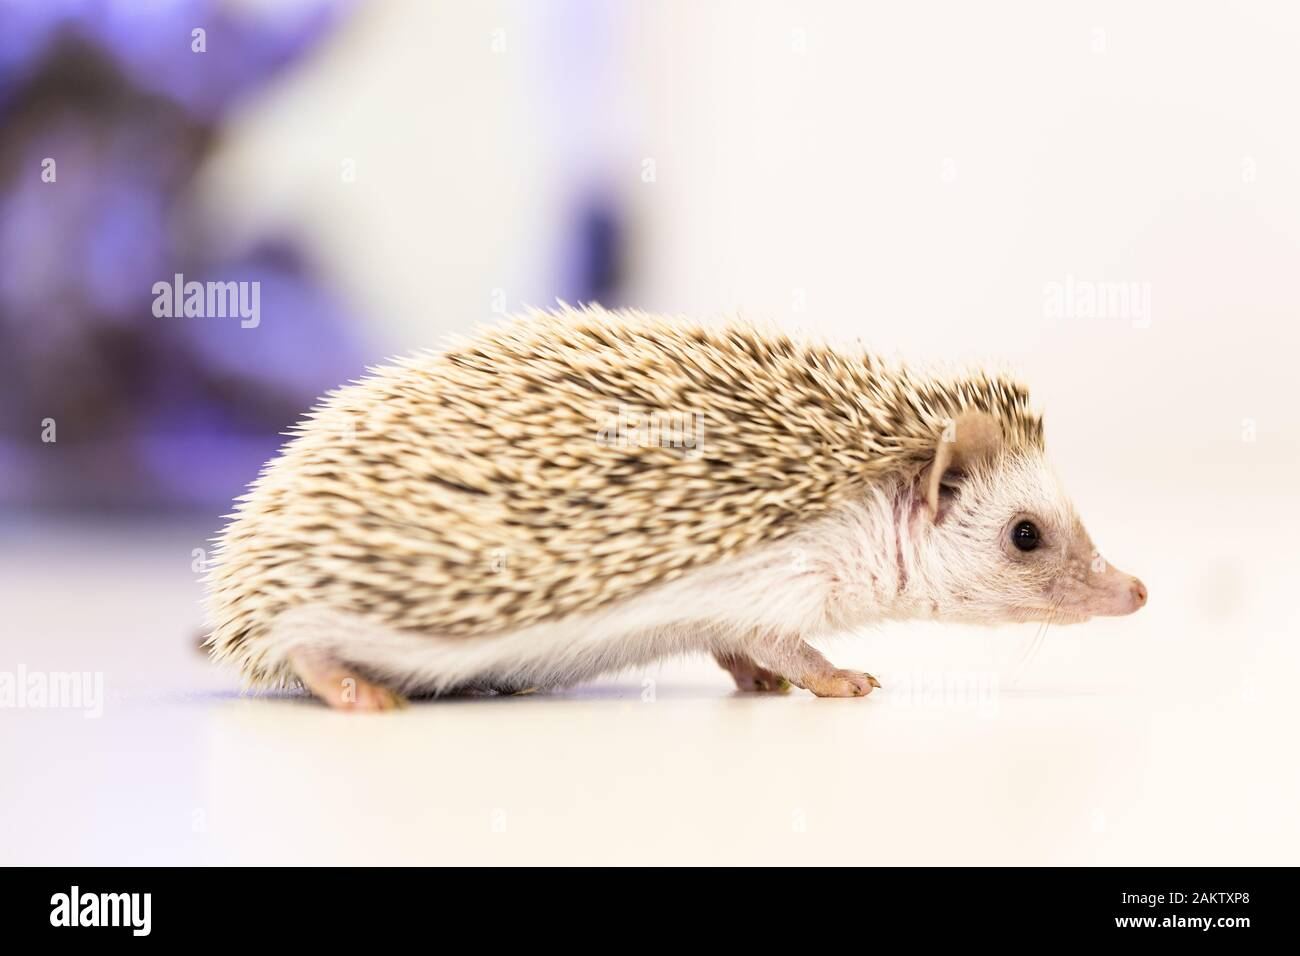 cute baby hedgehog pet on a white table isolated to a white background. Stock Photo